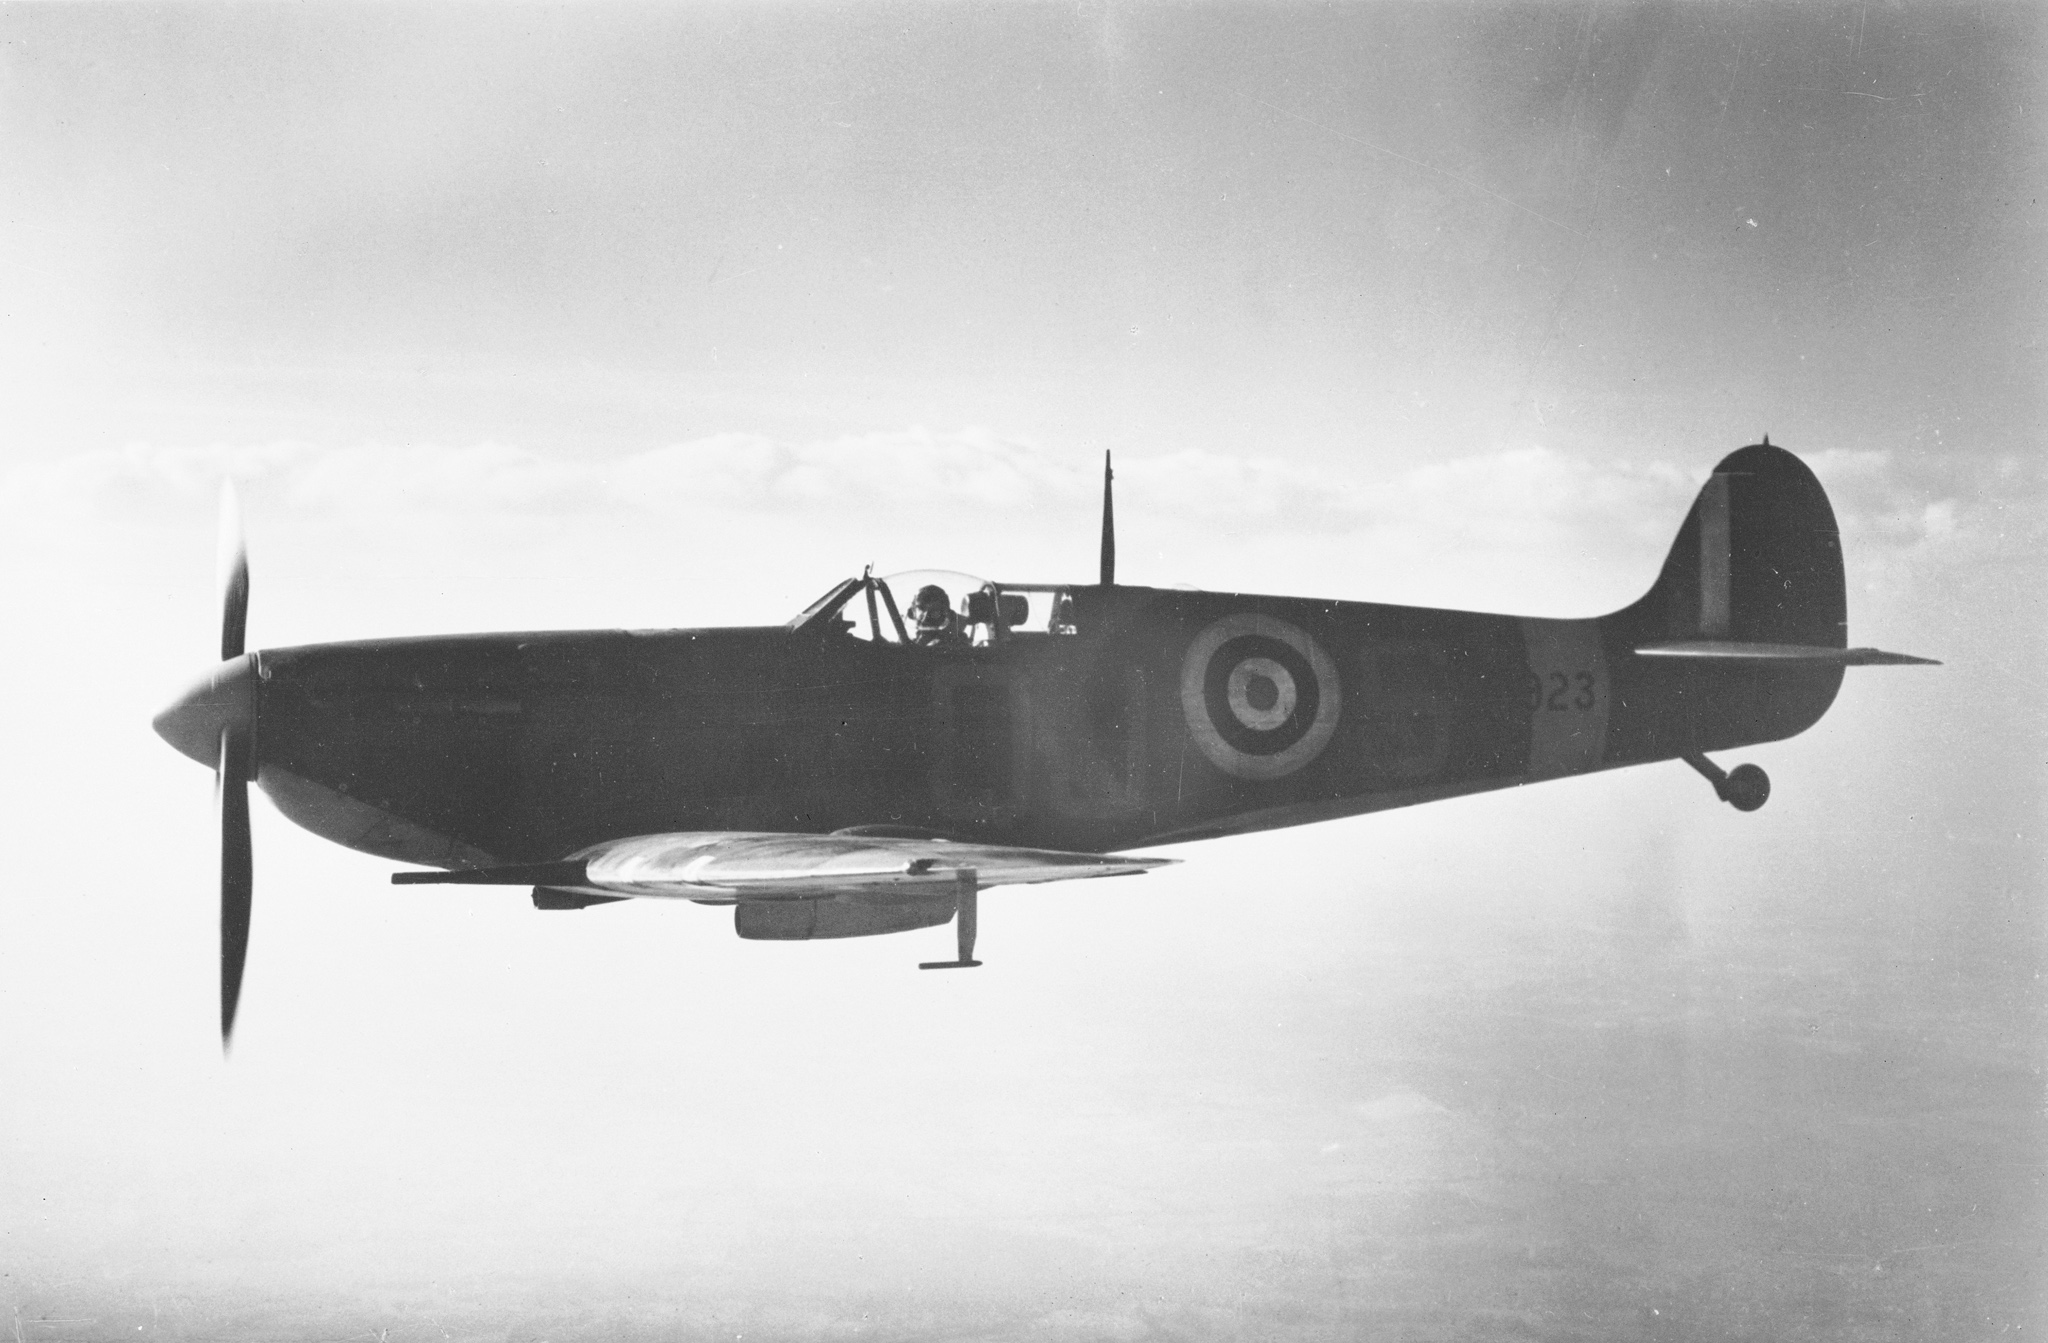 A Supermarine Spitfire – similar to the aircraft flown by Pilot Officer Magee with No. 412 (Fighter) Squadron, RCAF, at RAF Digby, Lincolnshire, during the Second World War – in flight in October 1941. PHOTO: DND